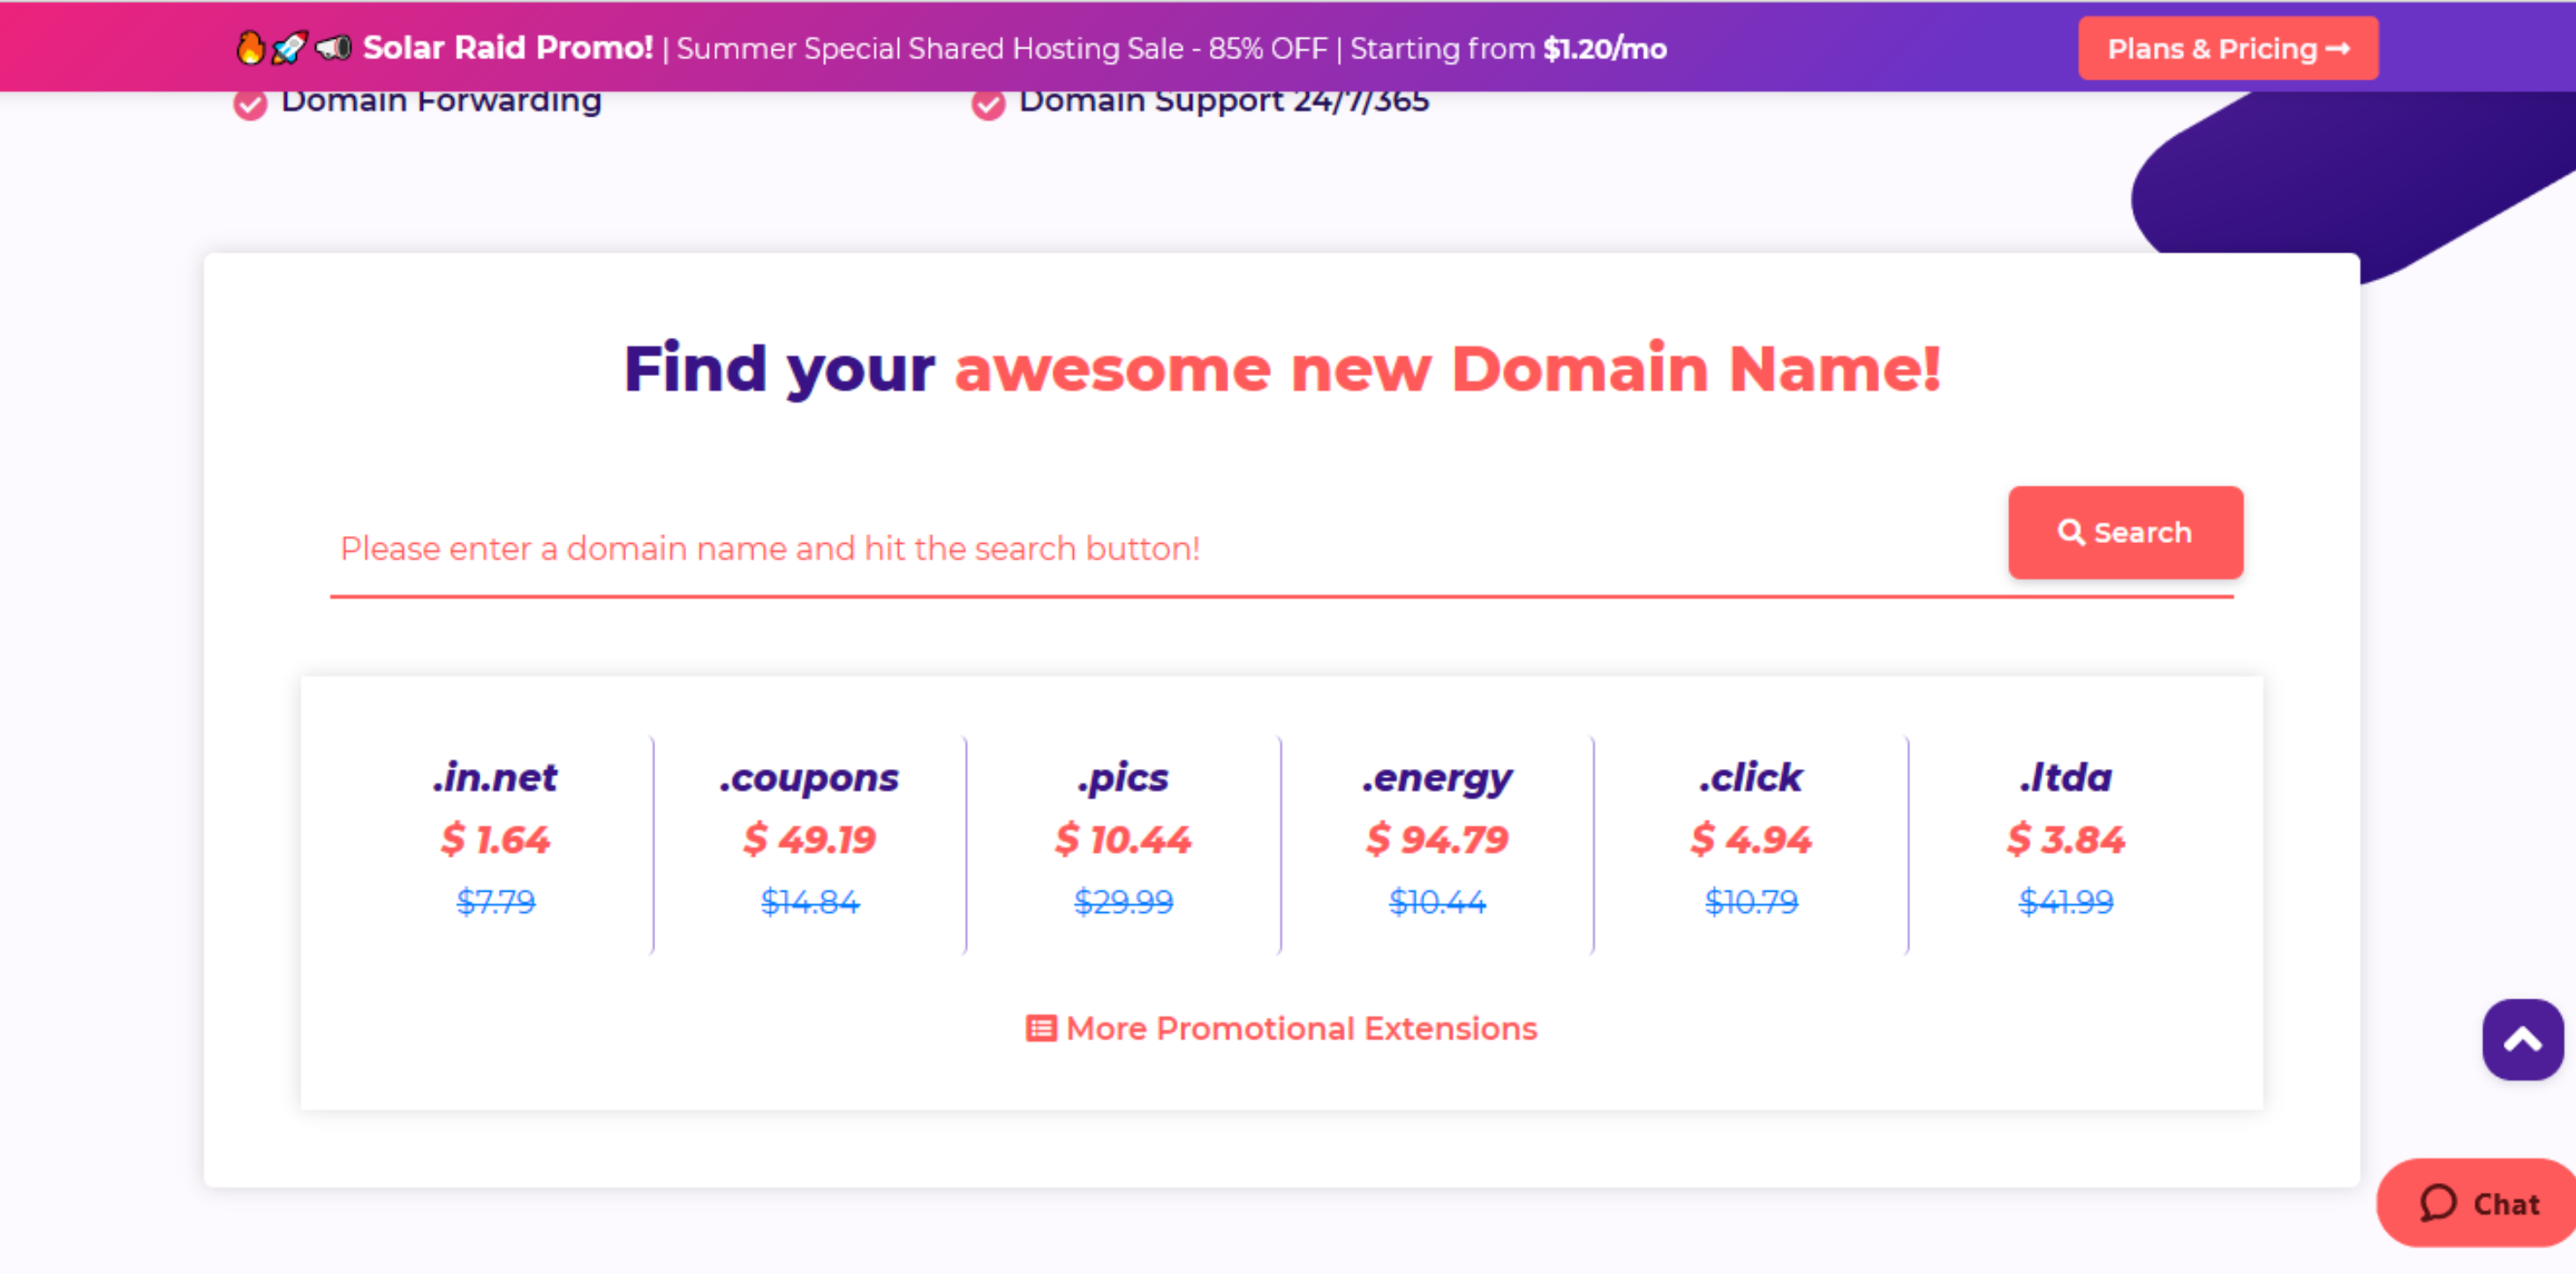 HostArmada domain name pricing